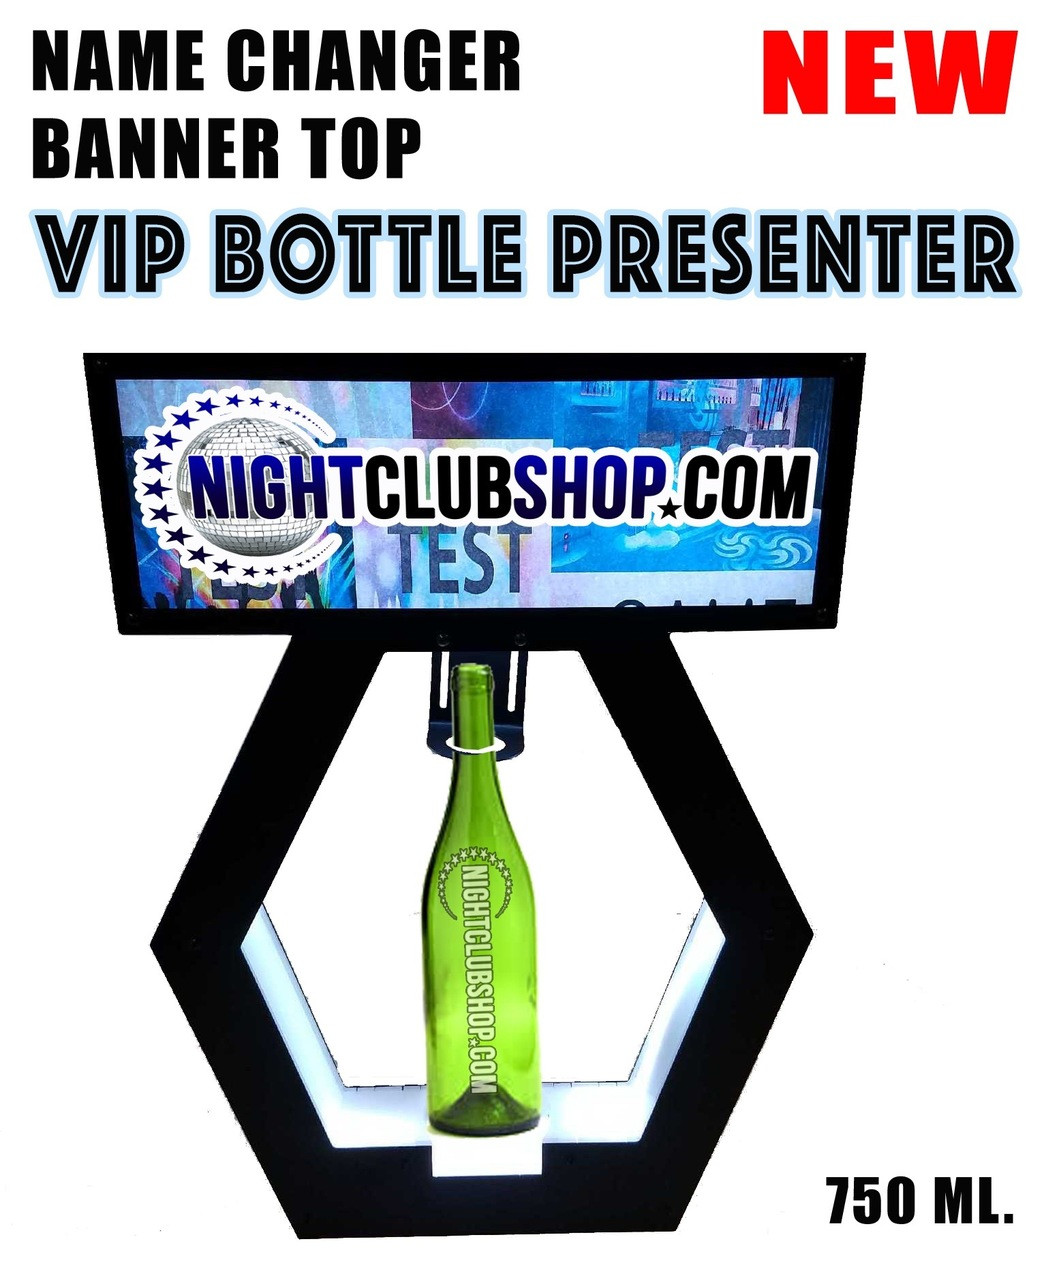 UNIVERSAL, BANNER TOP, HEX, PRESENTER, NAME CHANGER, VIP,SIGN, LED, Light up, CHAMPAGNE, BOTTLE, SERVICE, DELIVERY ,PRESENTATION, TRAY,750, Bottles, carrier